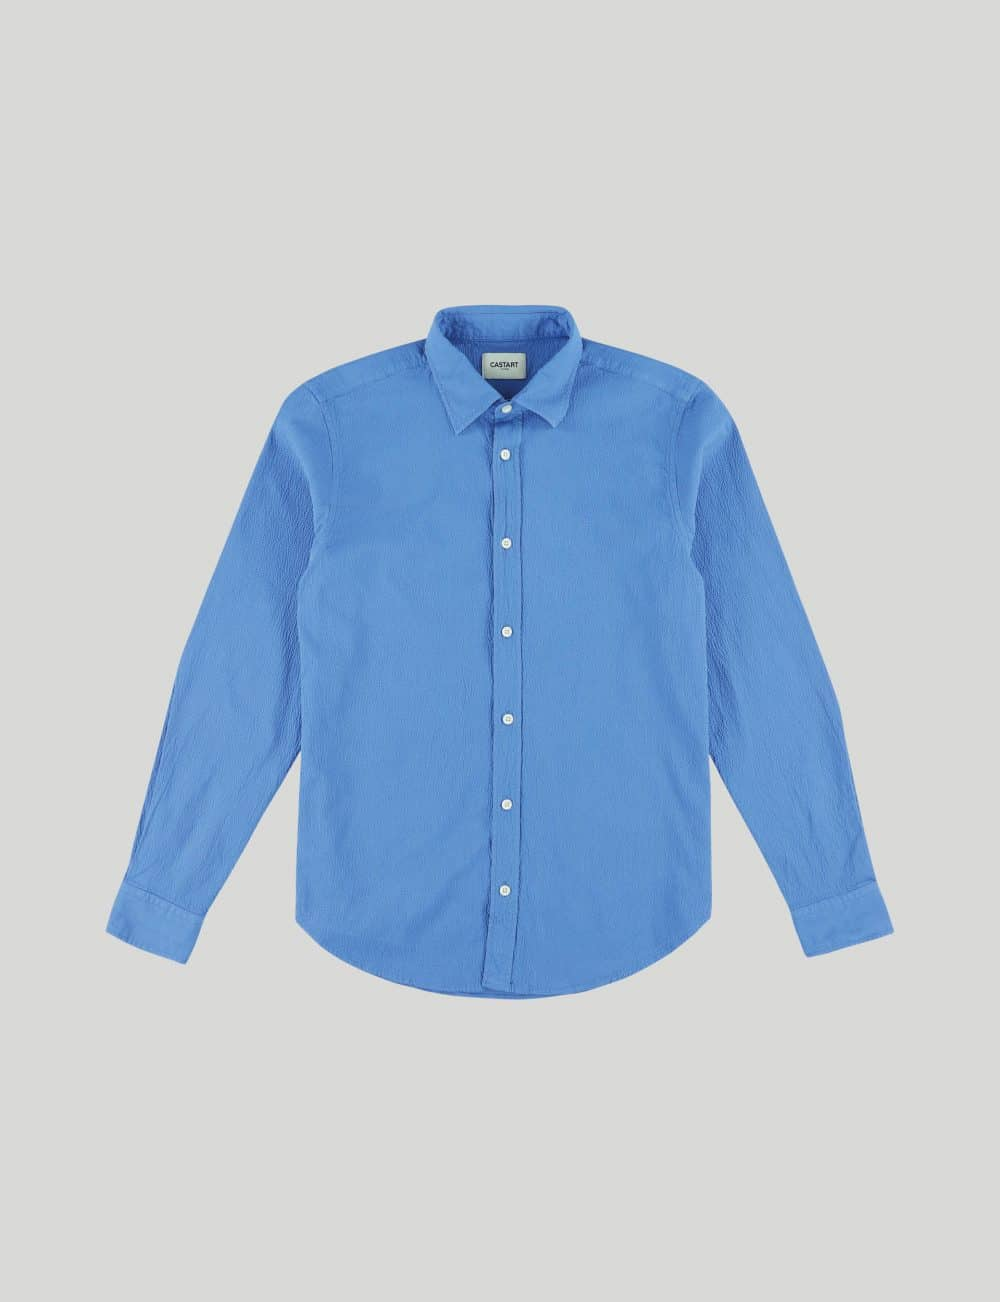 Castart - Tiger Tooth LS Shirt - French Blue